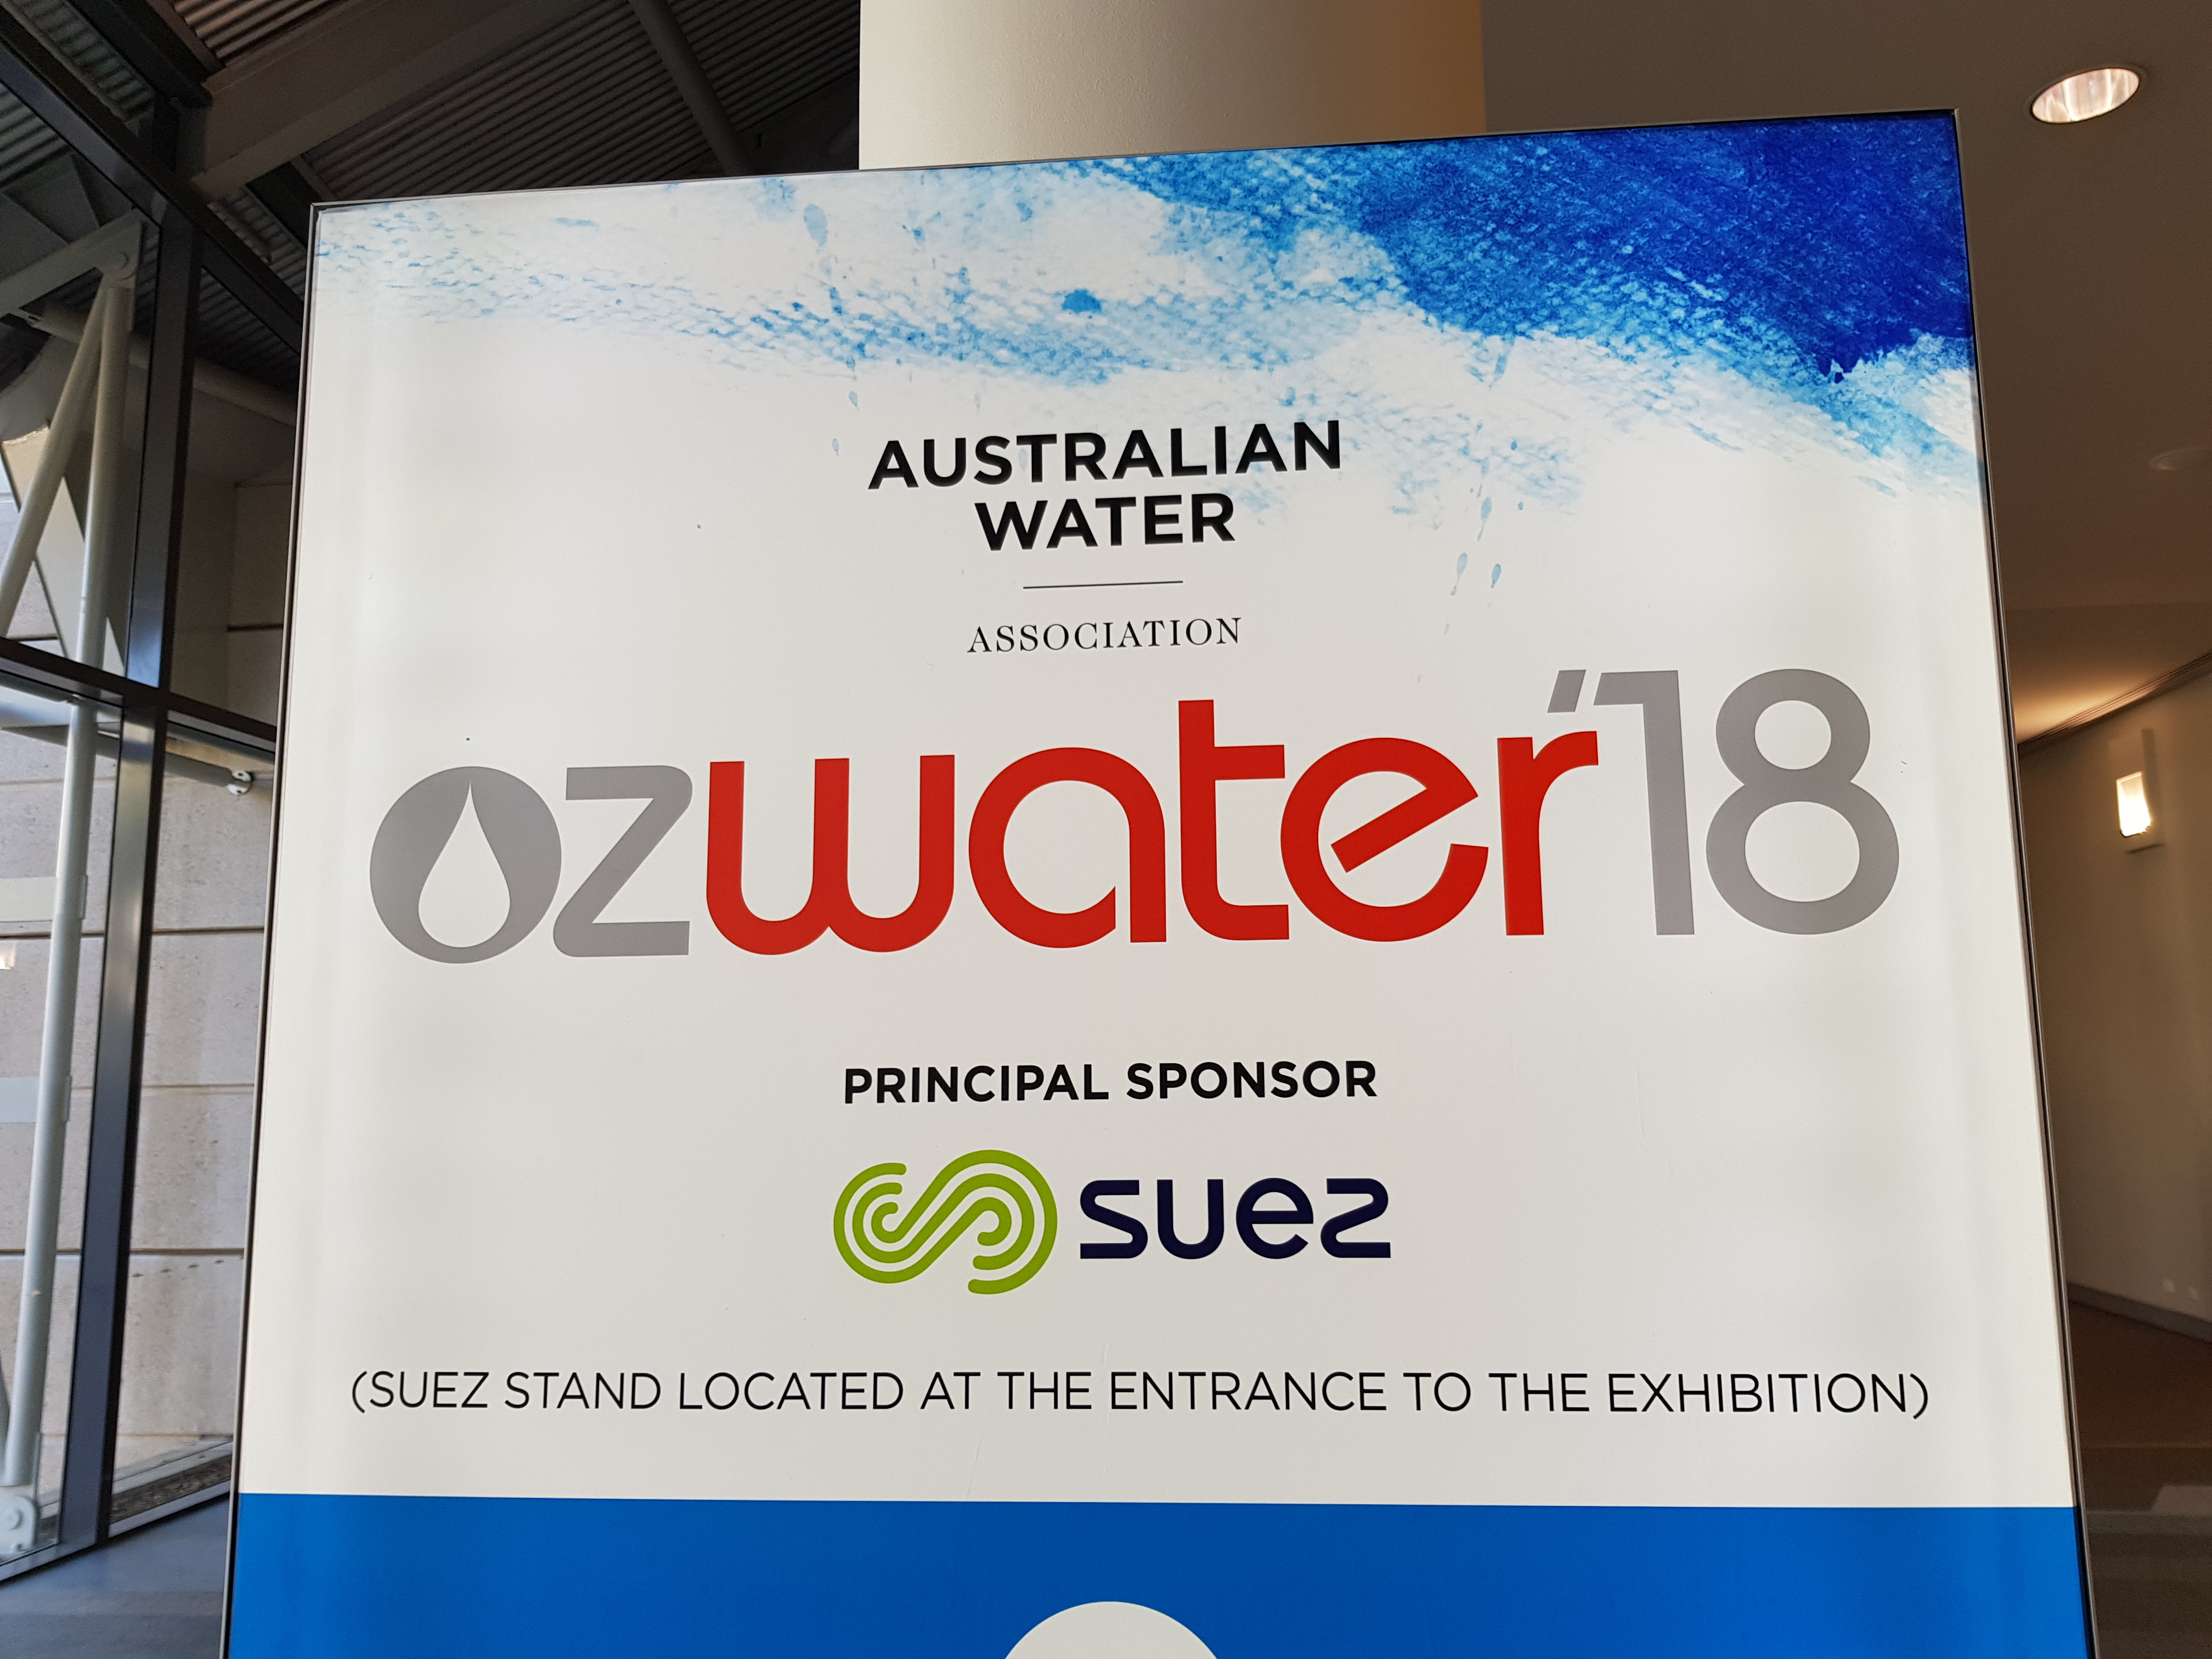 P&B Exhibits with GFF Power at OzWater18